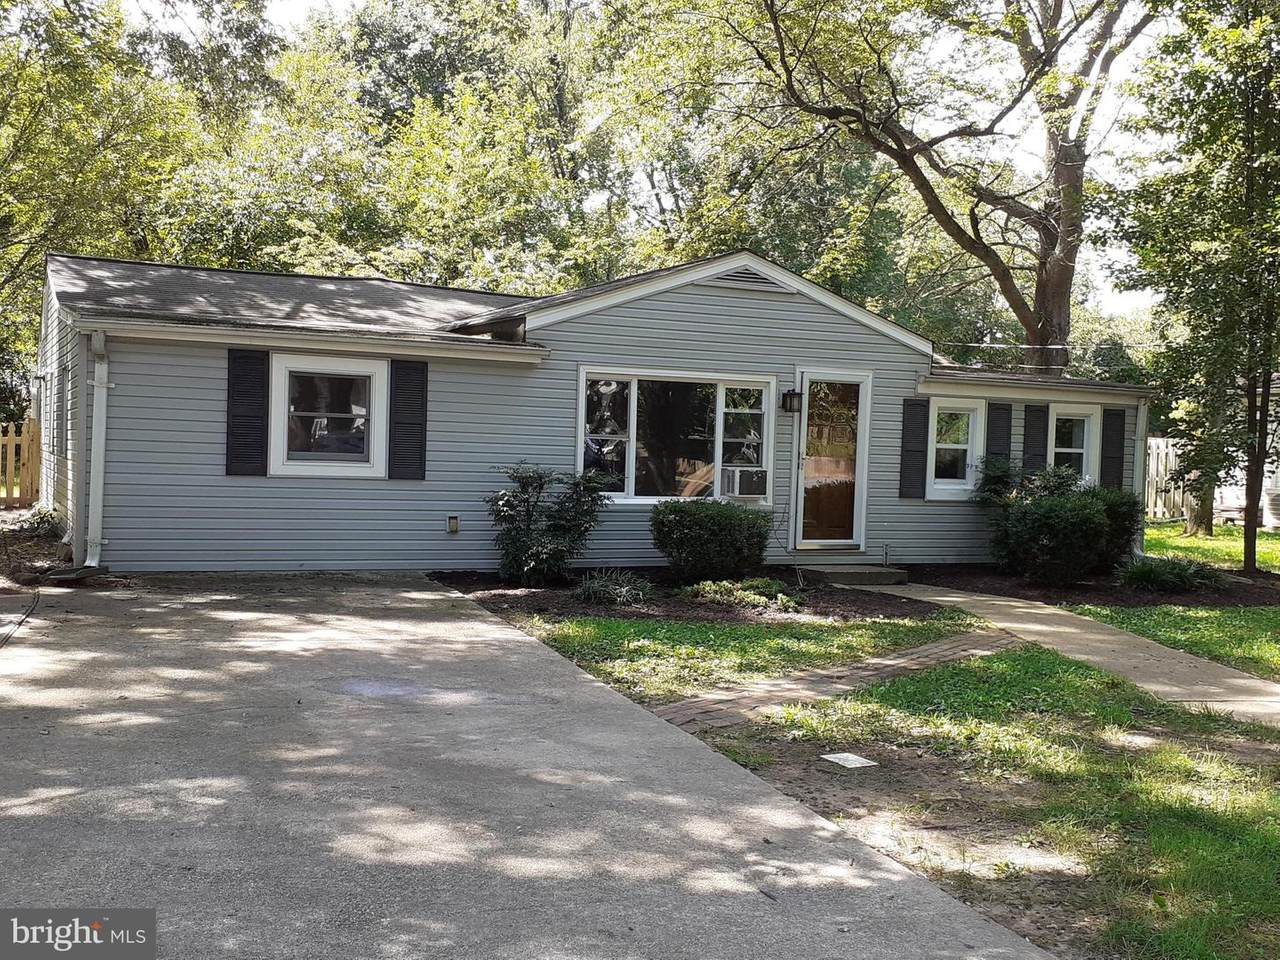 721 Oser Drive - Photo 1